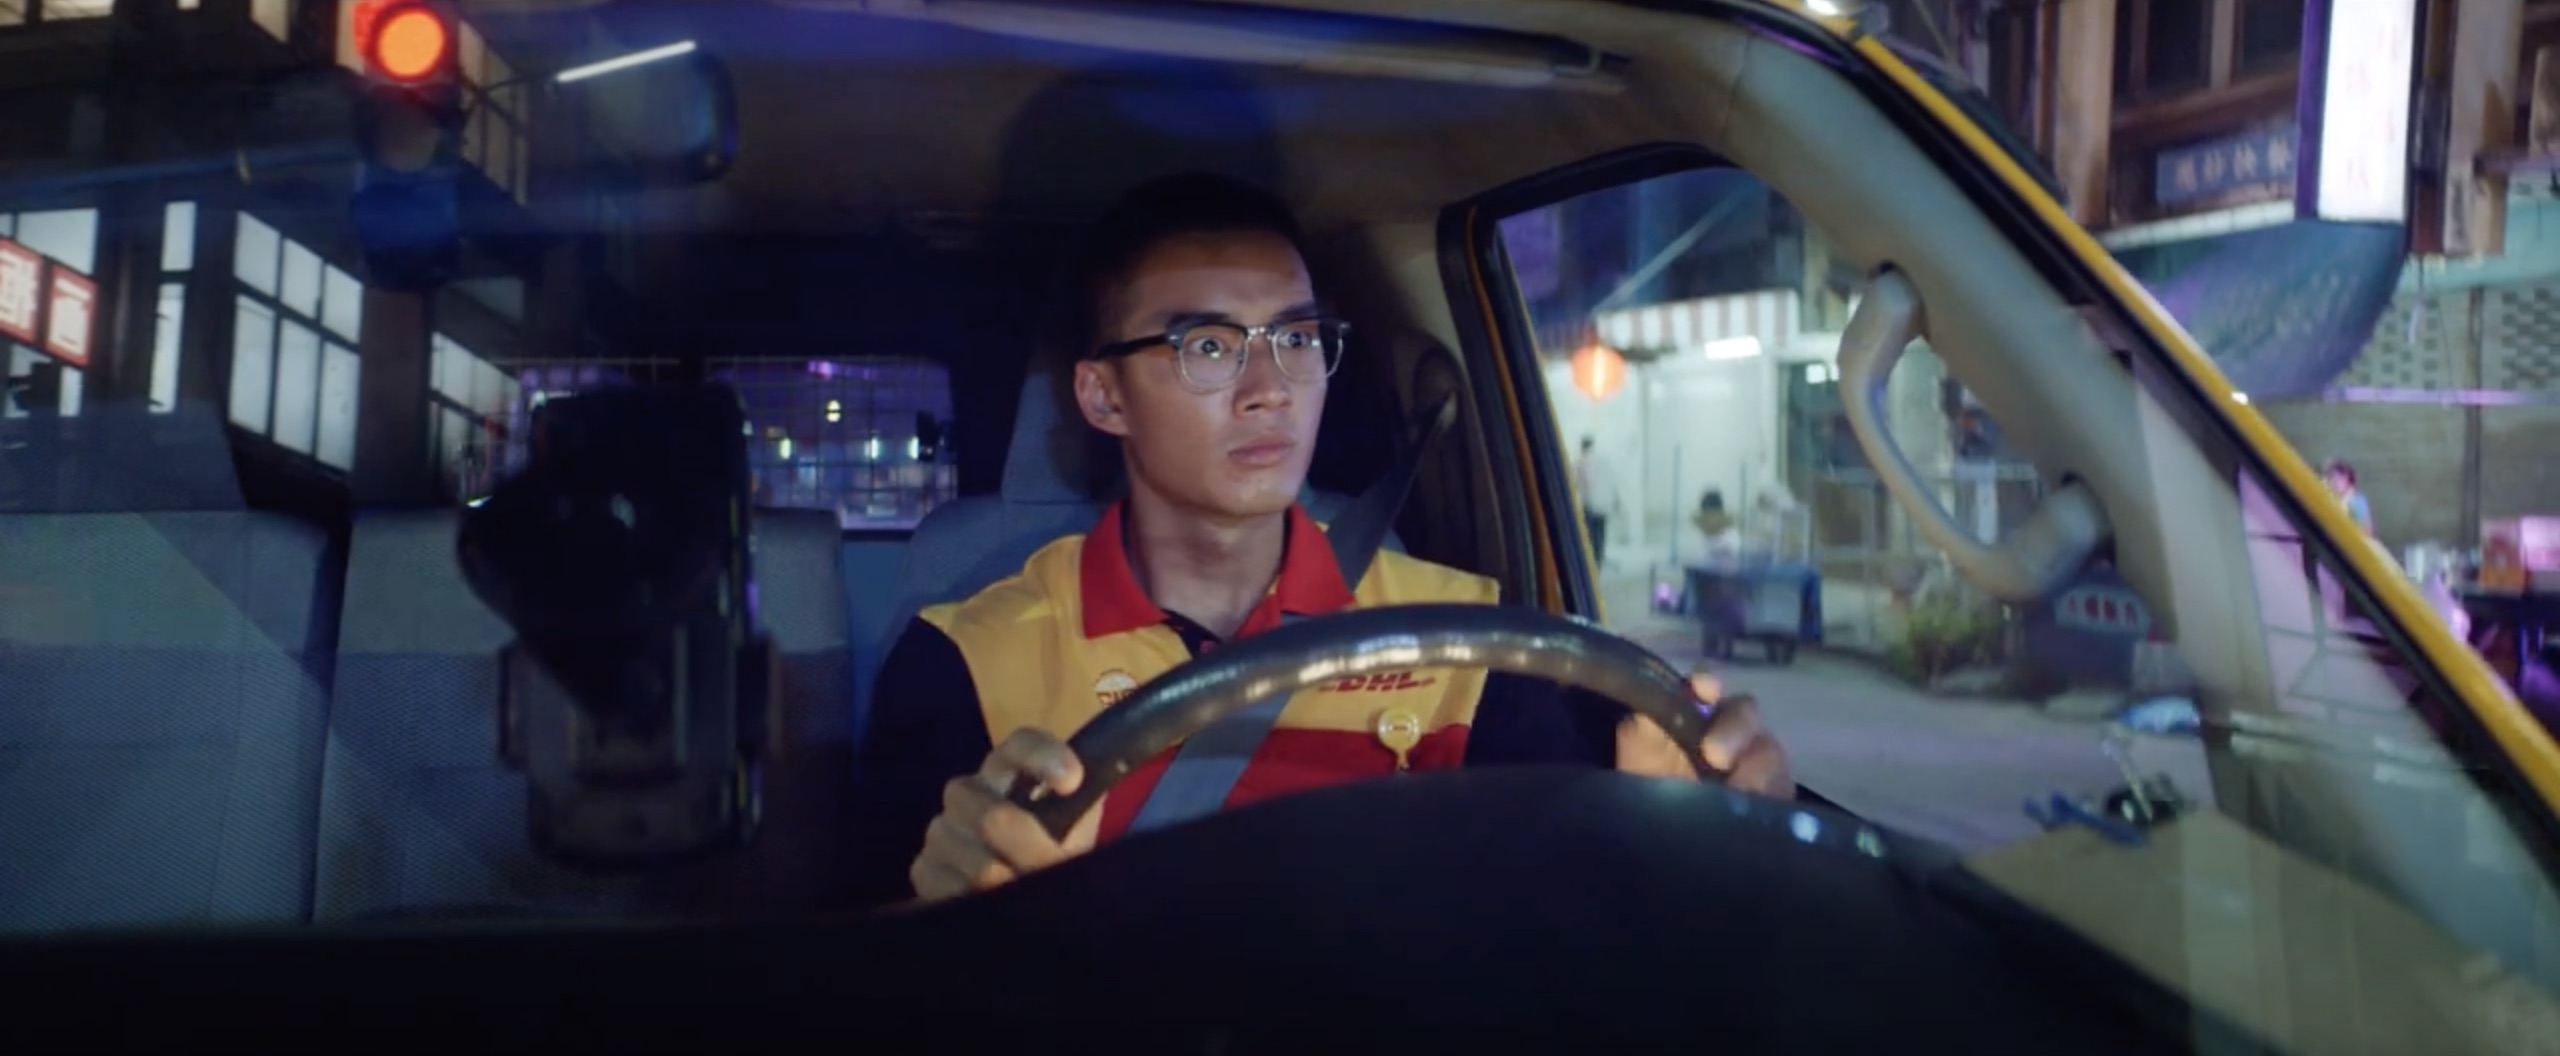 DHL Delivers In This Bond Film Promo